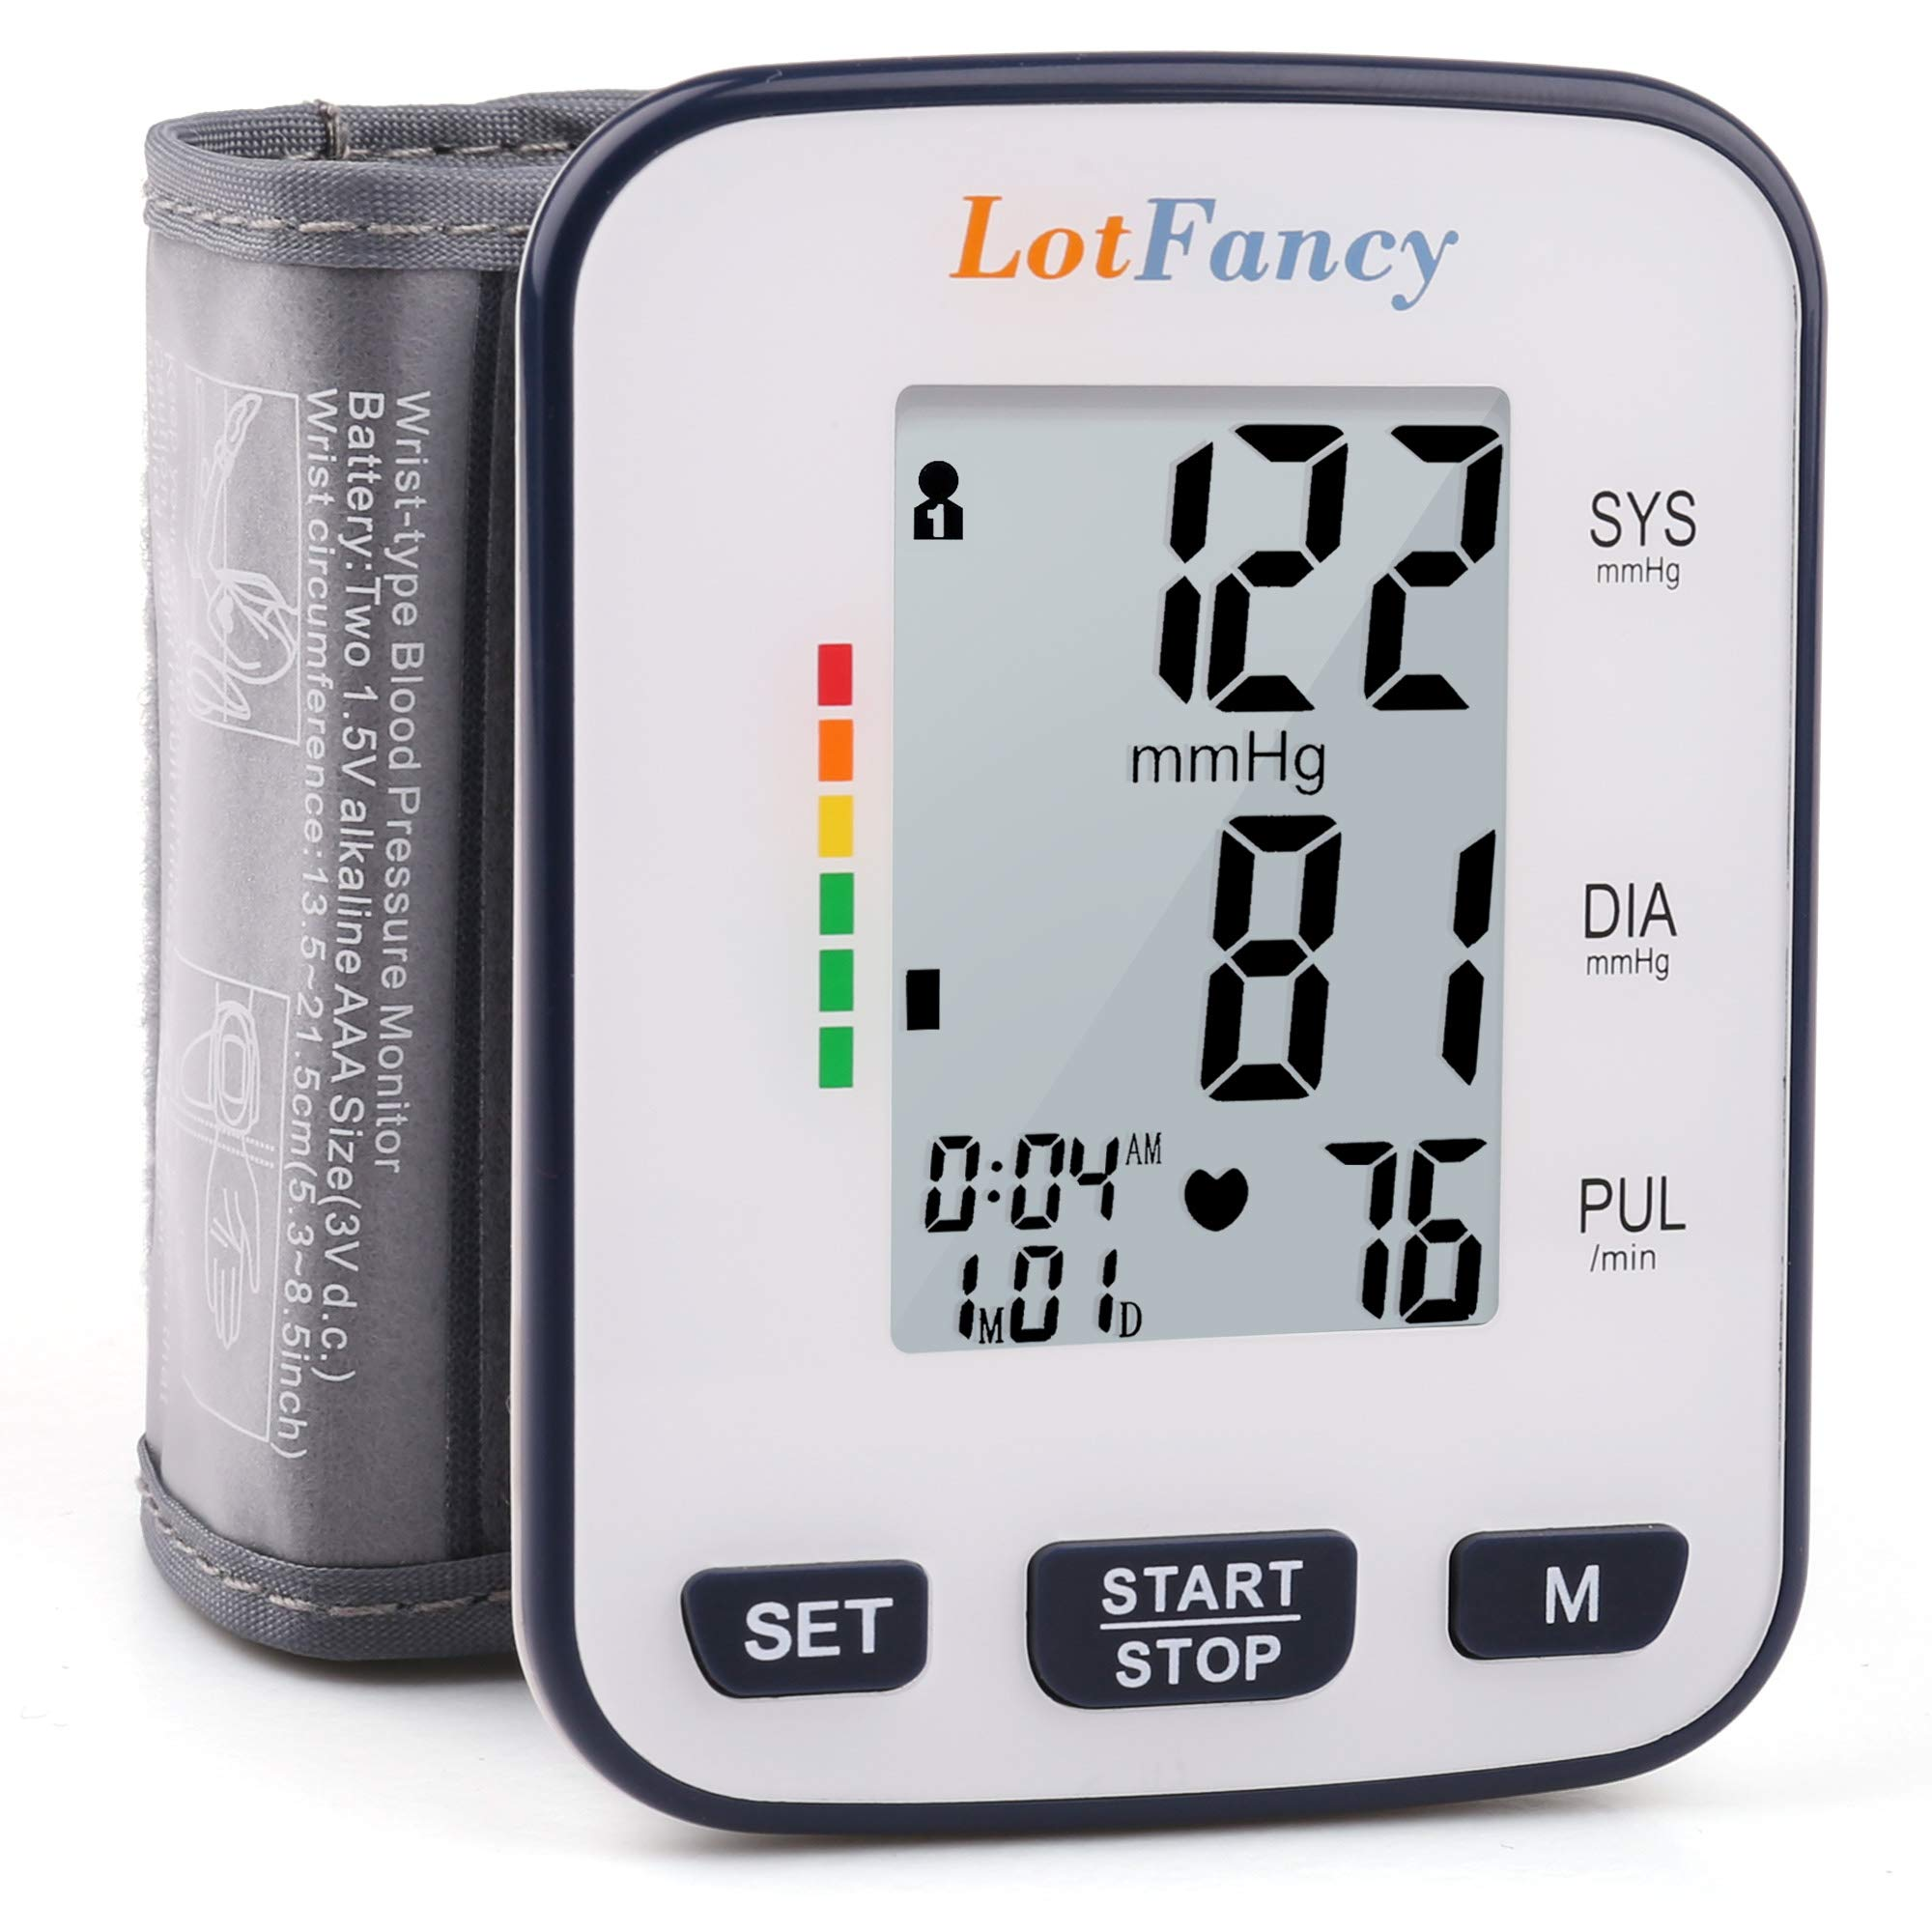 Wrist Blood Pressure Monitor Cuff by LotFancy, 2 User Mode, 120 Reading Memory, BP Cuff Size (5.3''- 8.5''), Manual Blood Pressure Monitor with Large LCD Display, Case Included